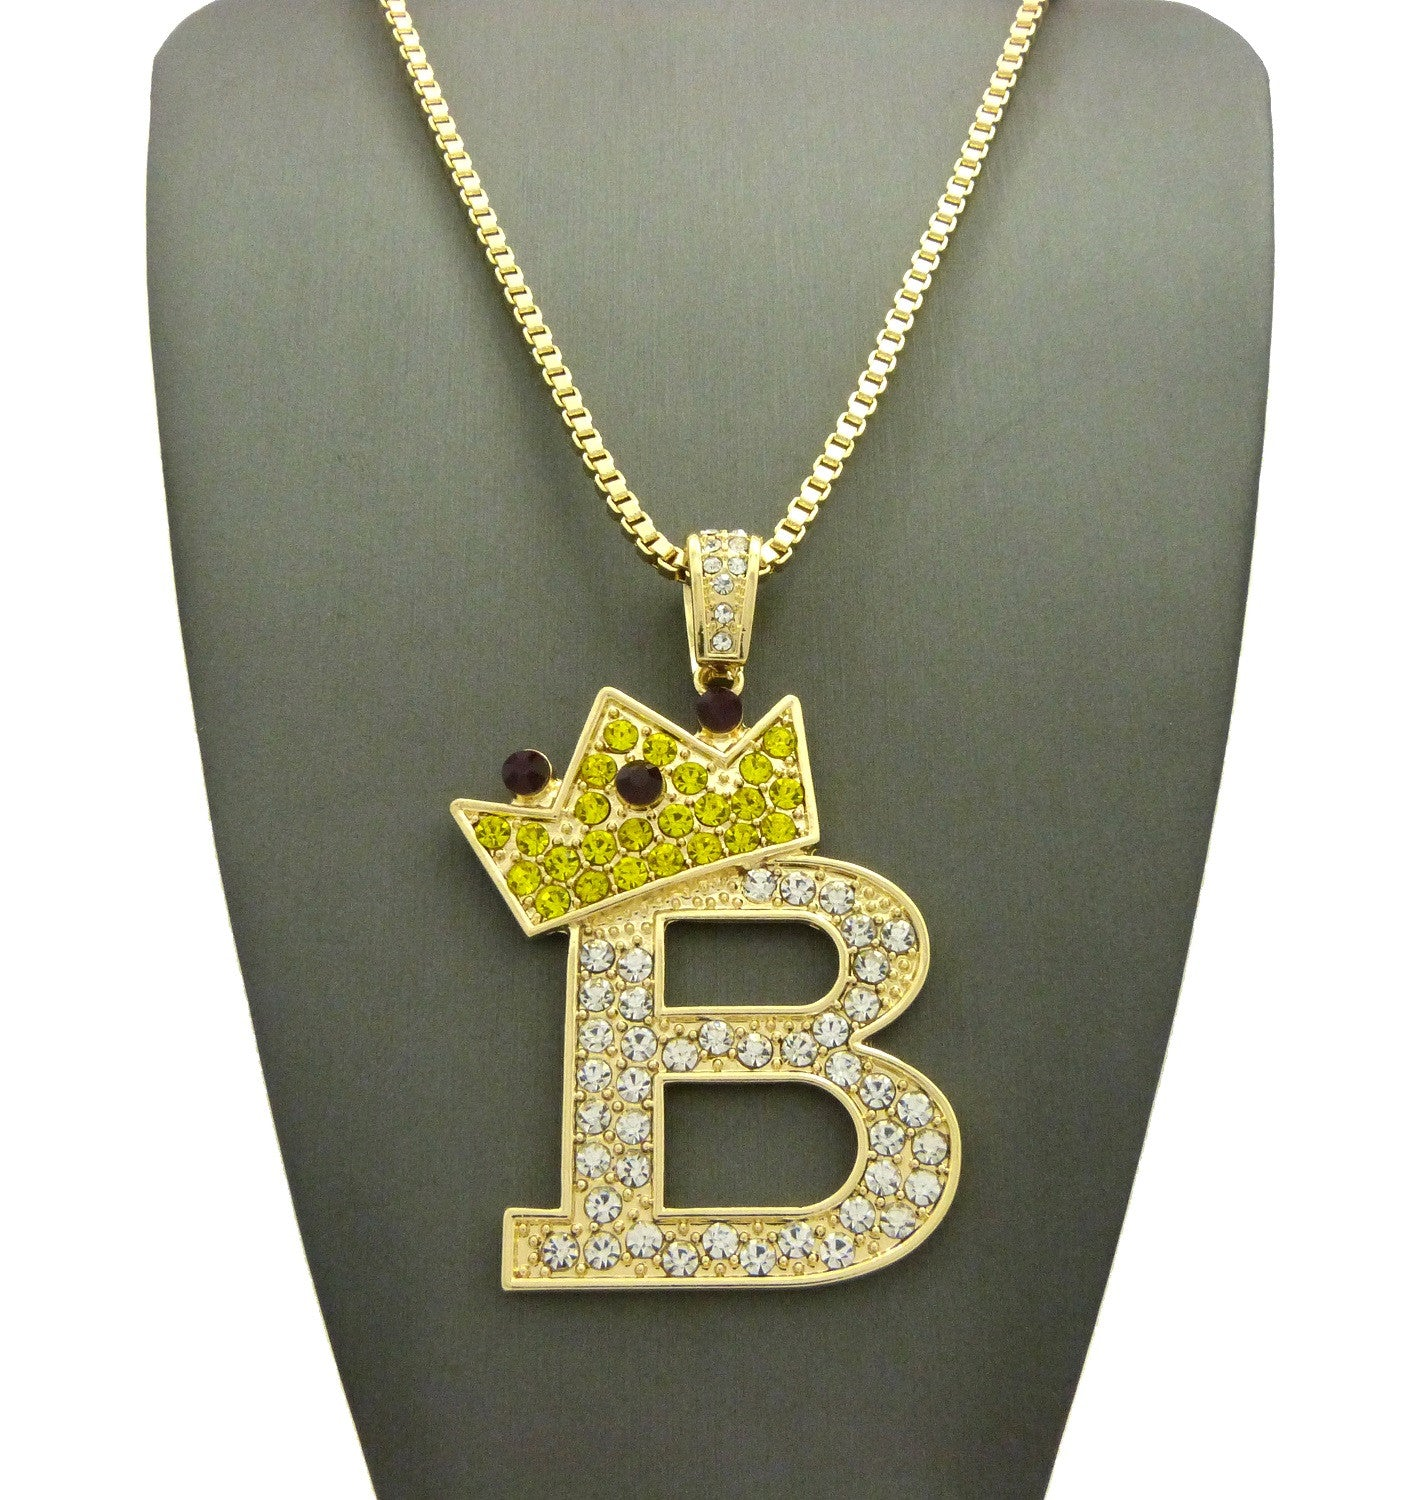 Stone Stud Large Titled Crown Initial B Pendant  Necklace, Gold-Tone